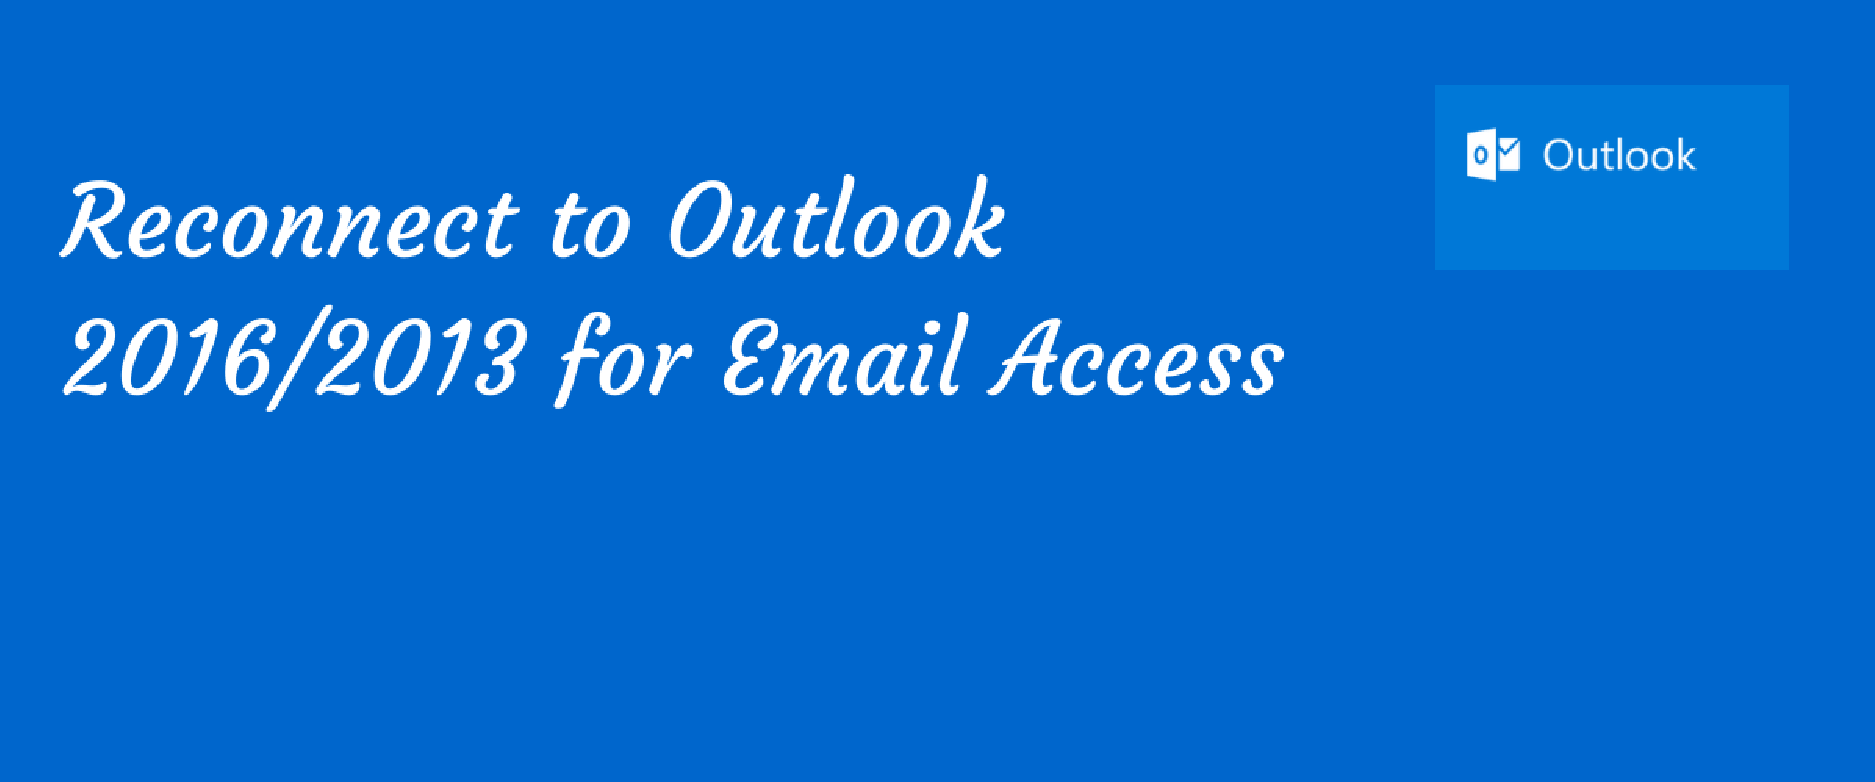 Reconnect to Outlook 2016/2013 for Email Access